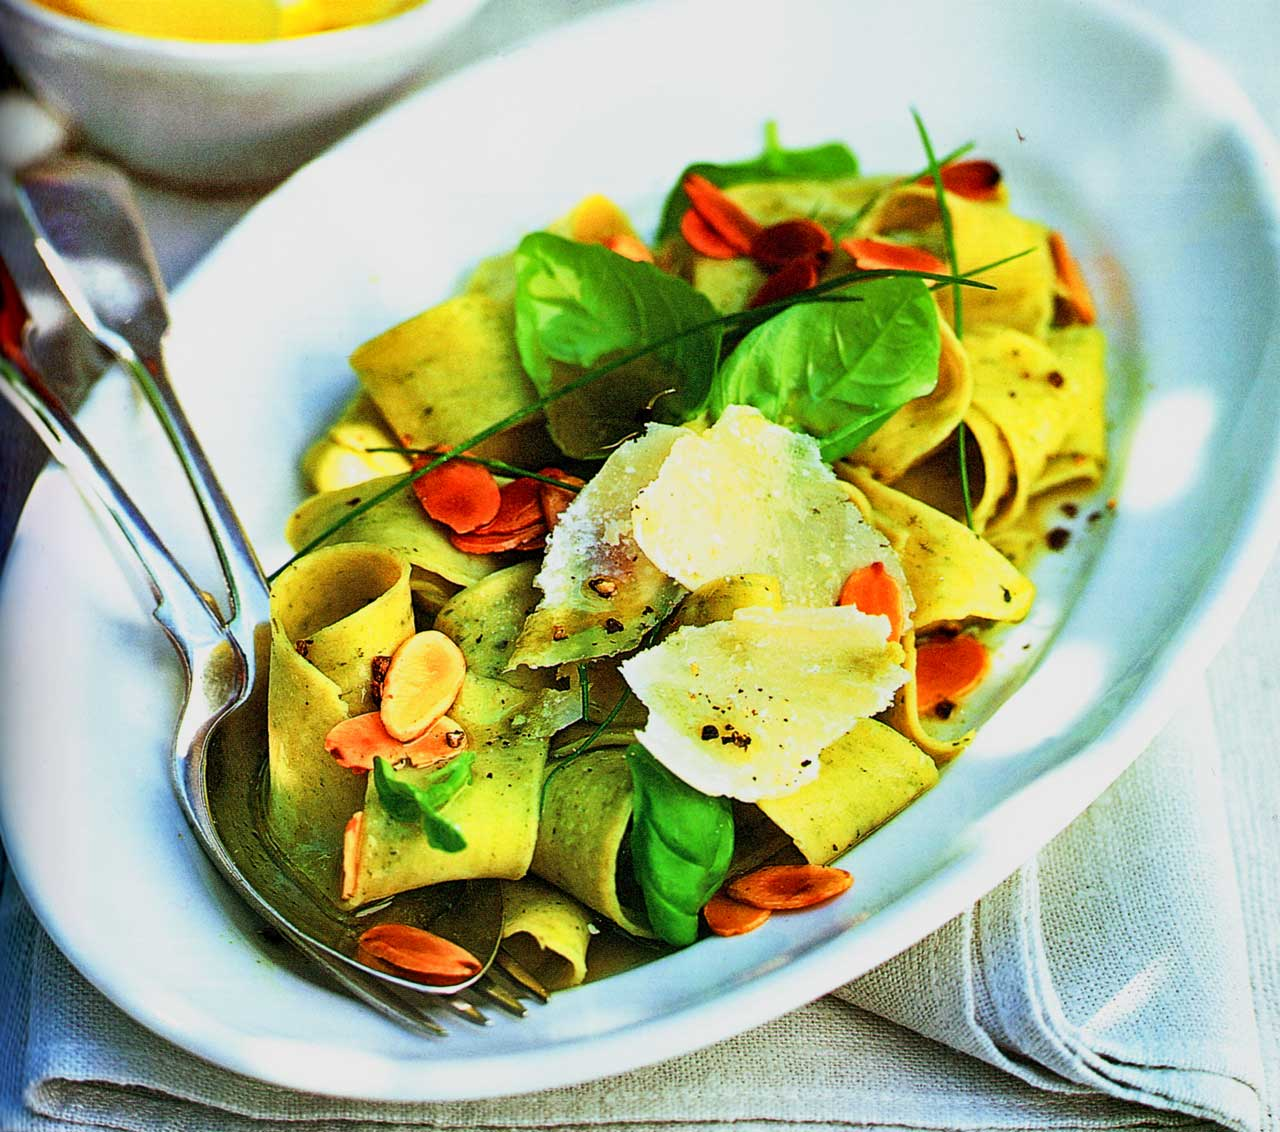 Pappardelle With Basil Oil-Italian easy pasta recipes www.eatopic.com